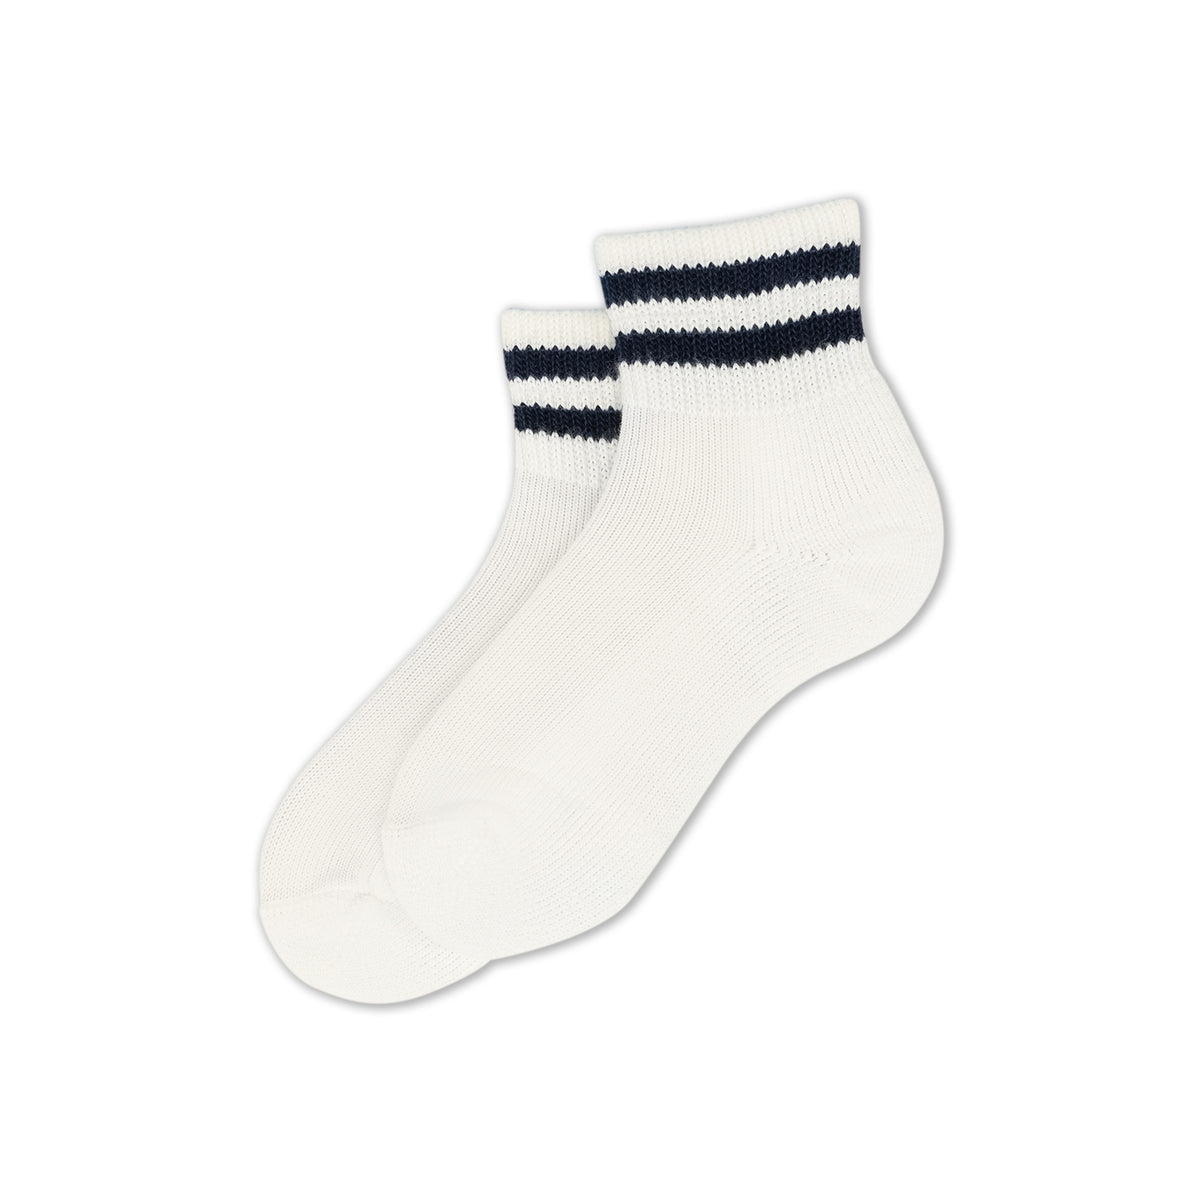 Thorlos Postal Socks - Unisex Mini-crew - White/ Postal Blue Stripes